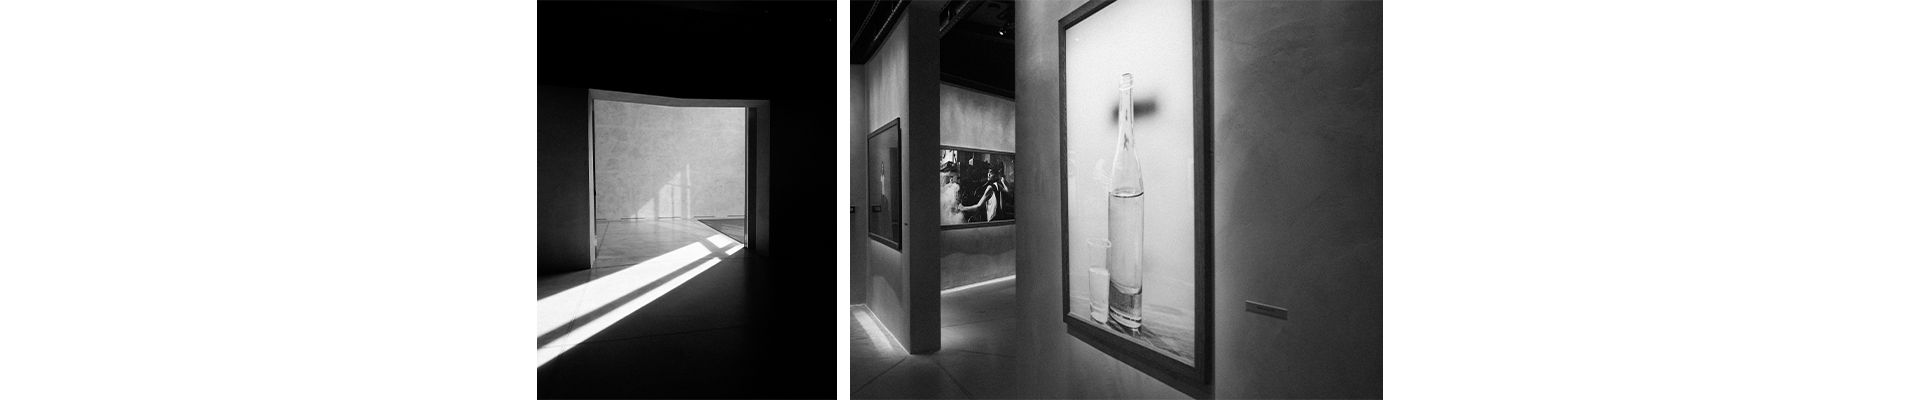 thegreatestmagazine-armani-exhibition-spaces-banner